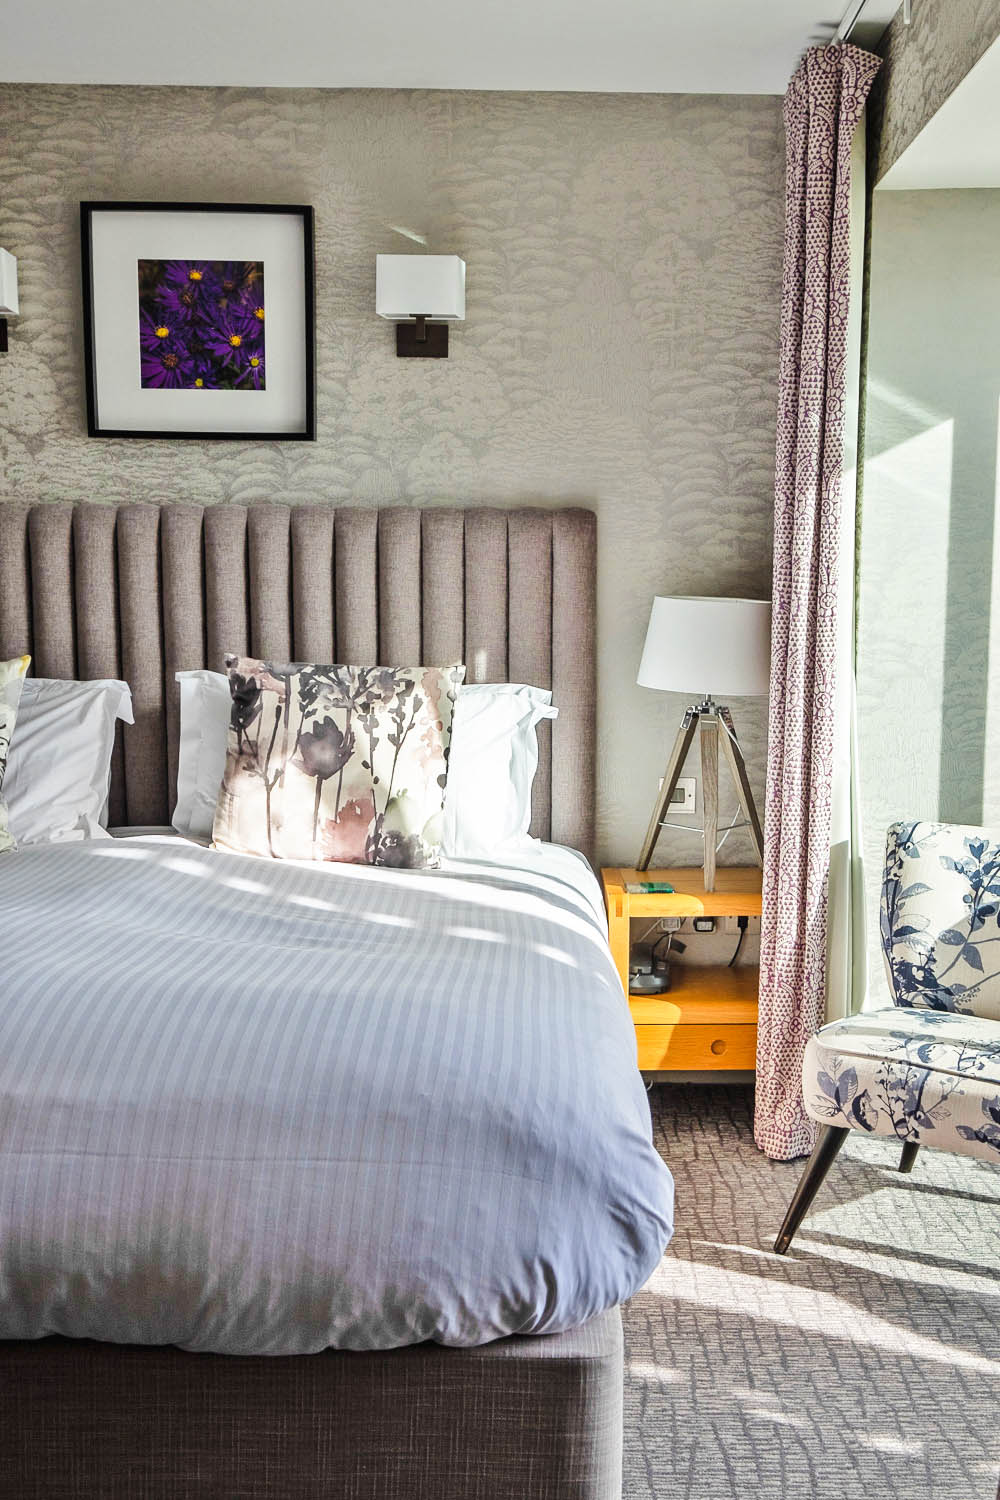 Mounthaven hotel in Marazion | A 5-day guide to beautiful Cornwall by Mondomulia